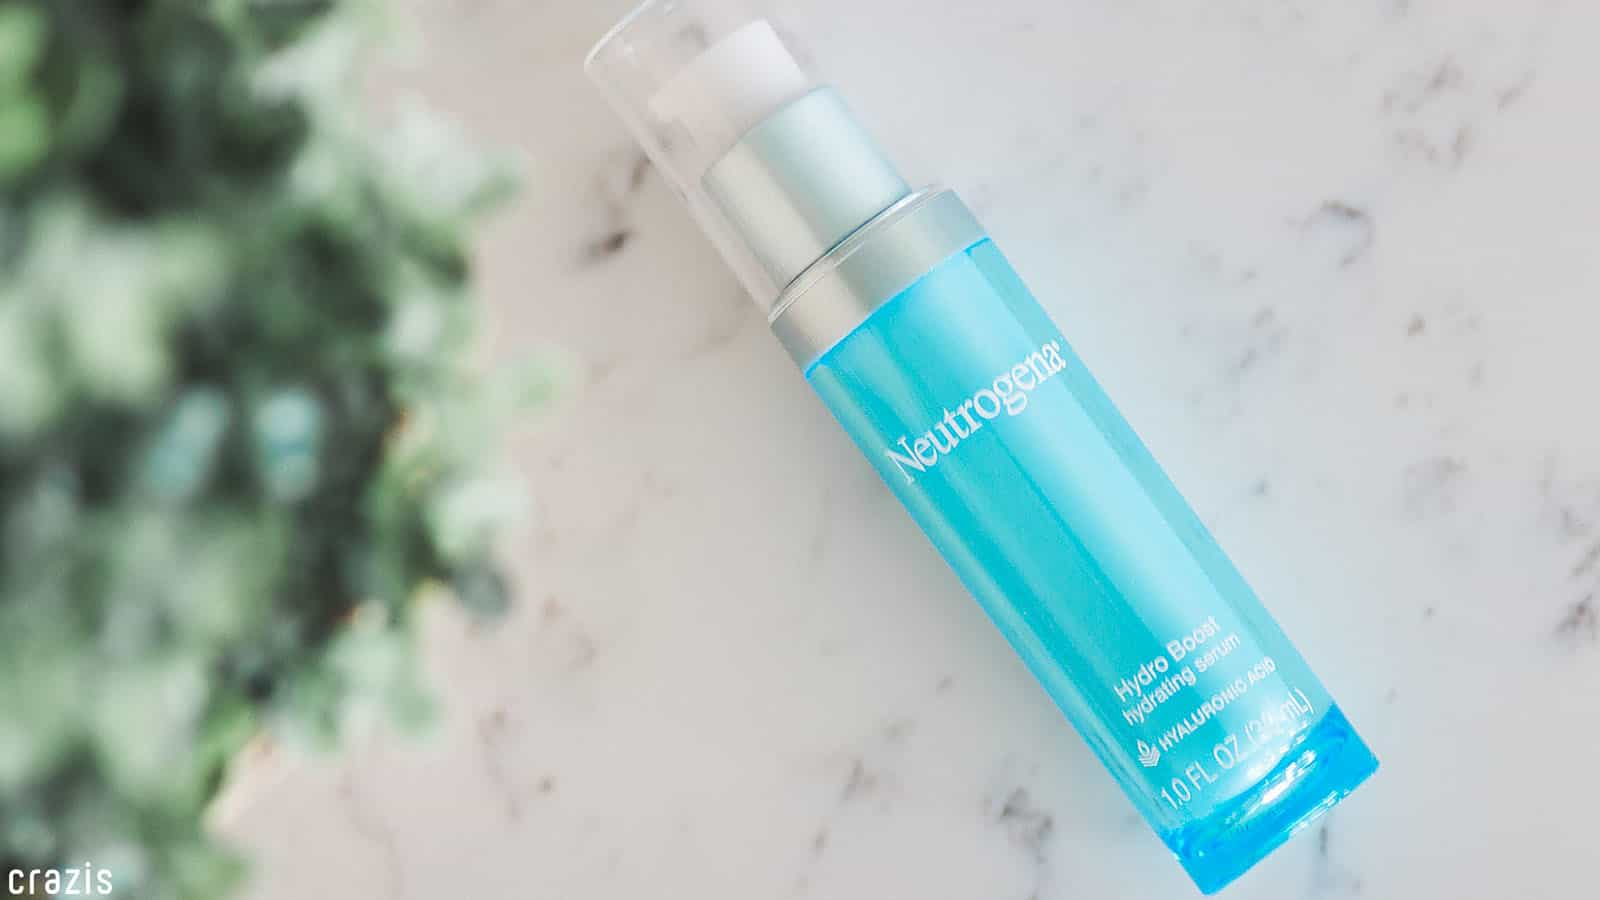 Serum dành cho da dầu Neutrogena Hydro Boost Hydrating Serum